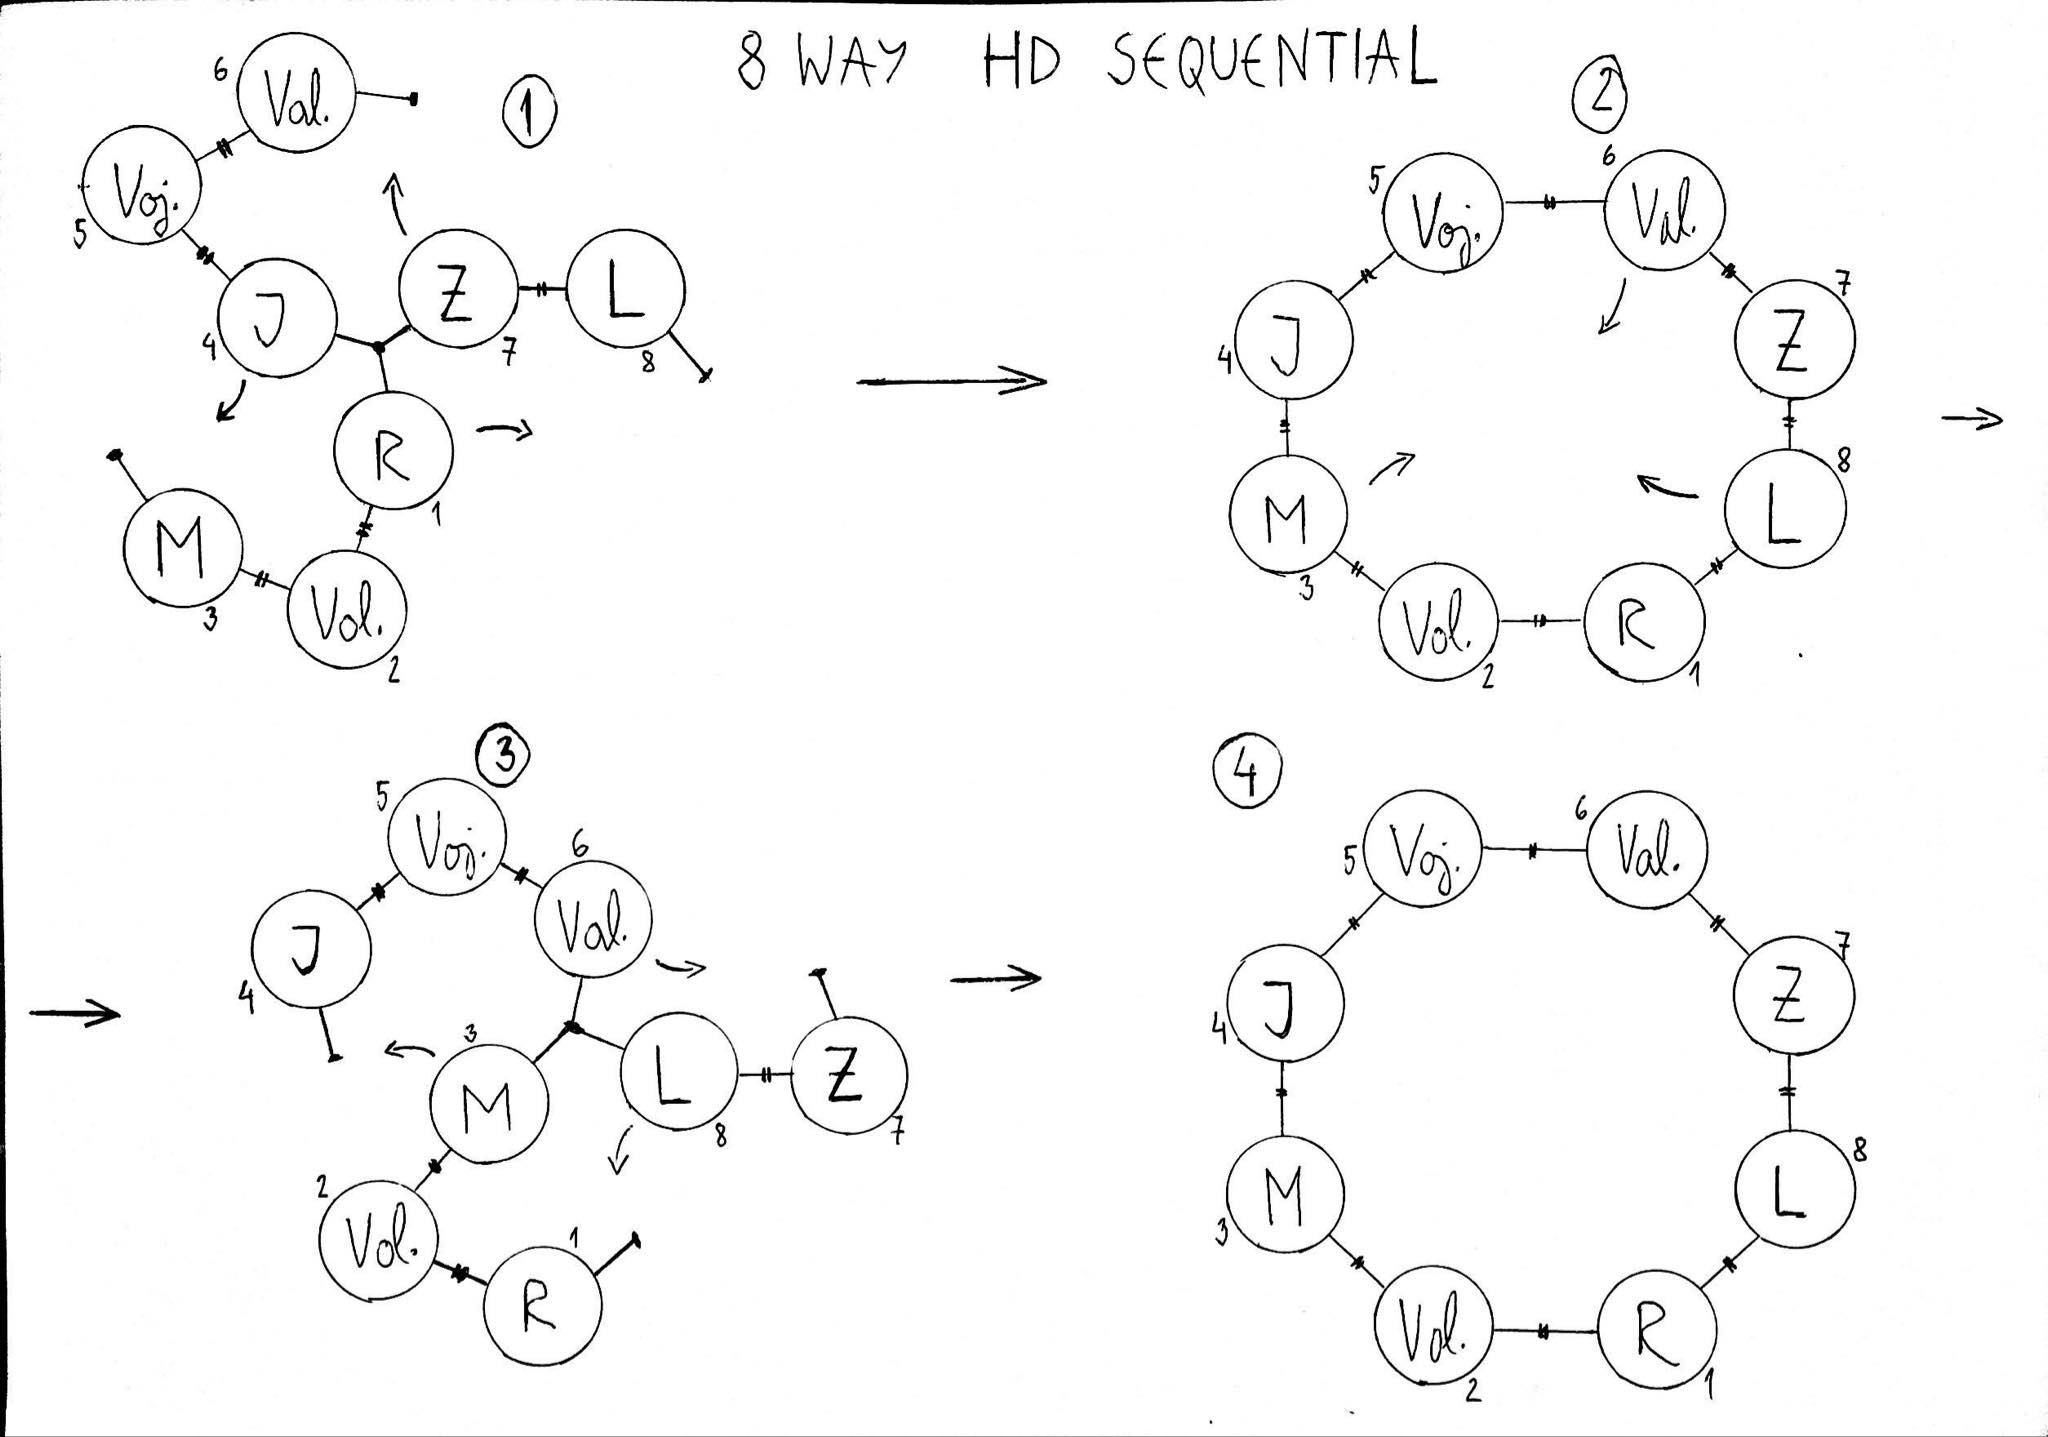 8way-HD-sequential